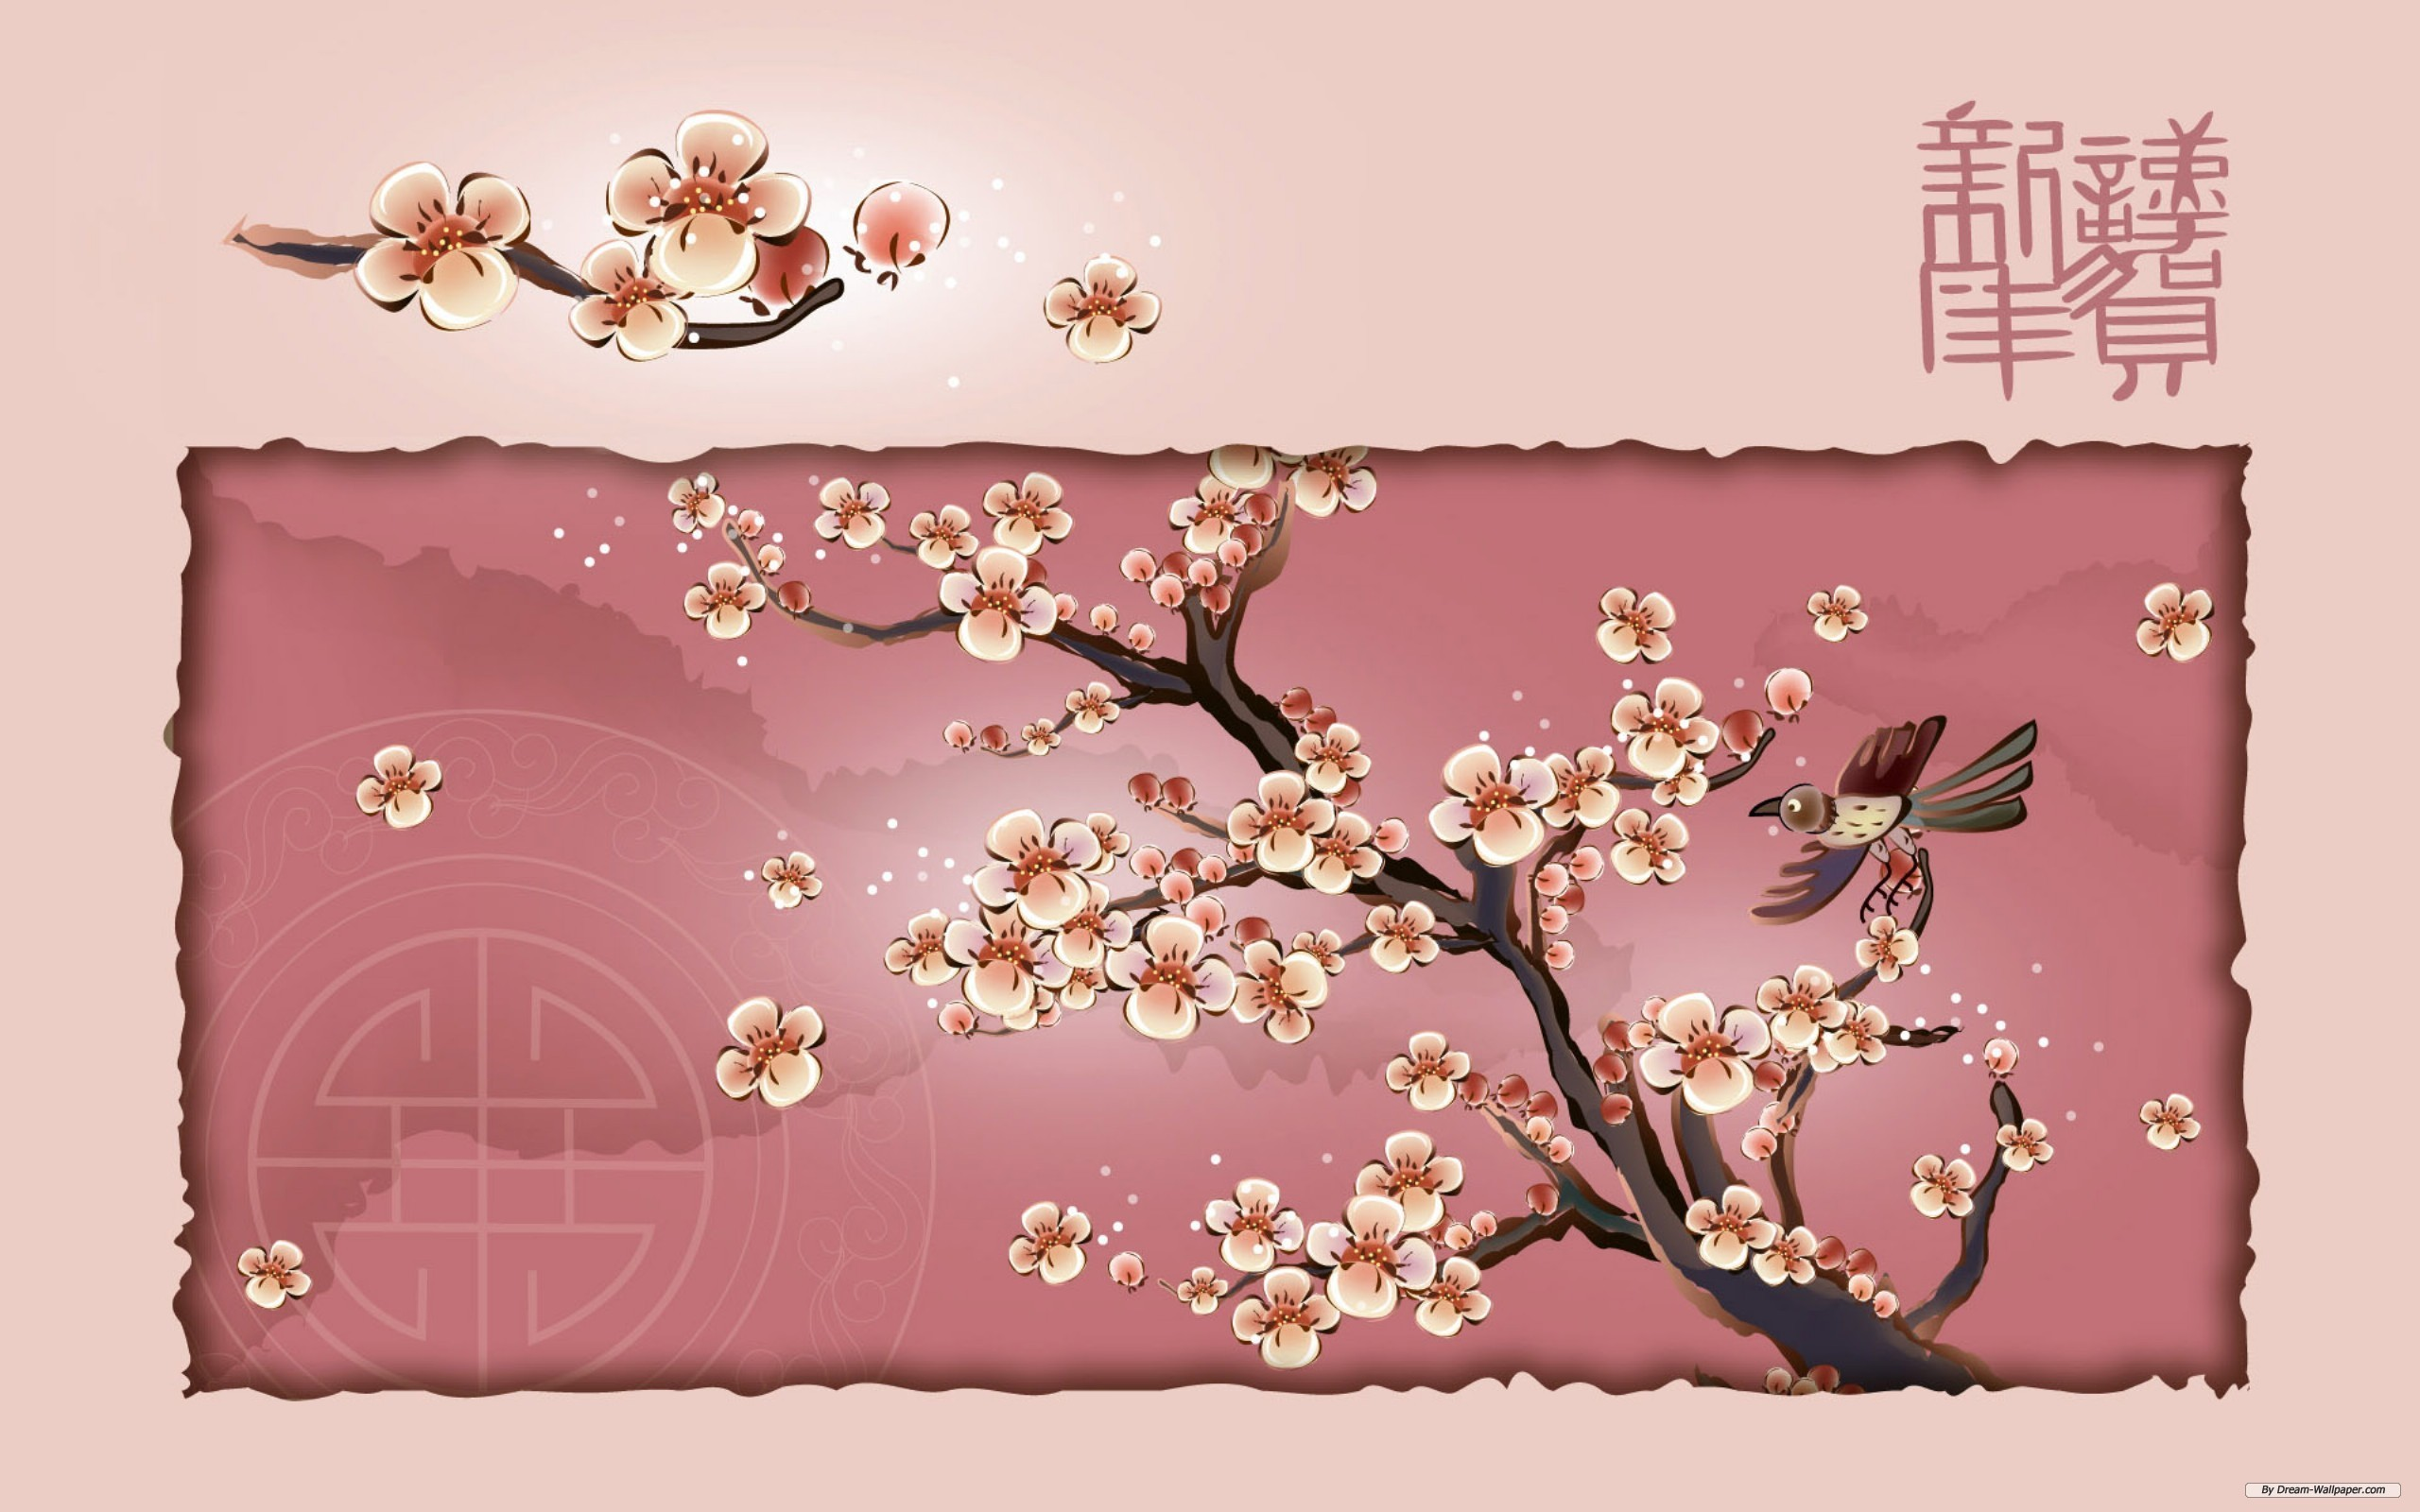 Res: 2560x1600, Free Chinese Wallpaper